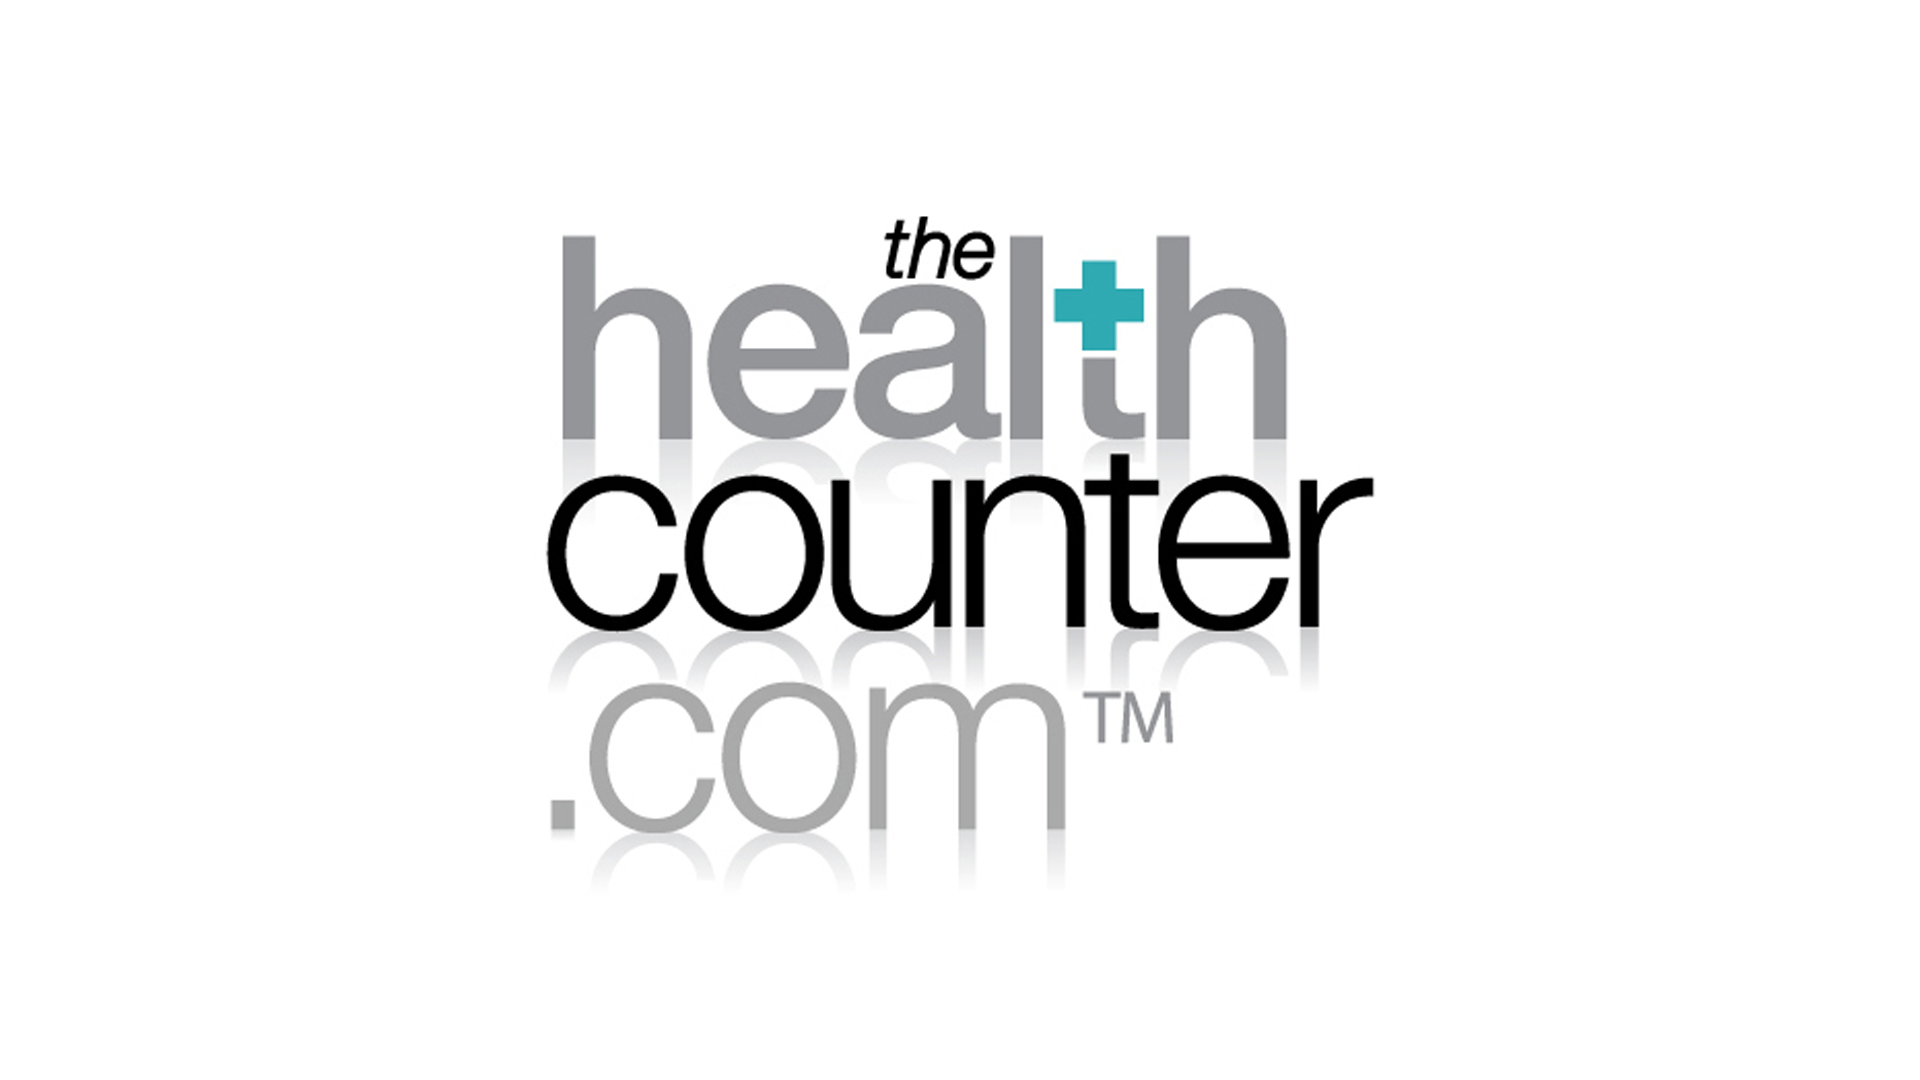 The Health Counter